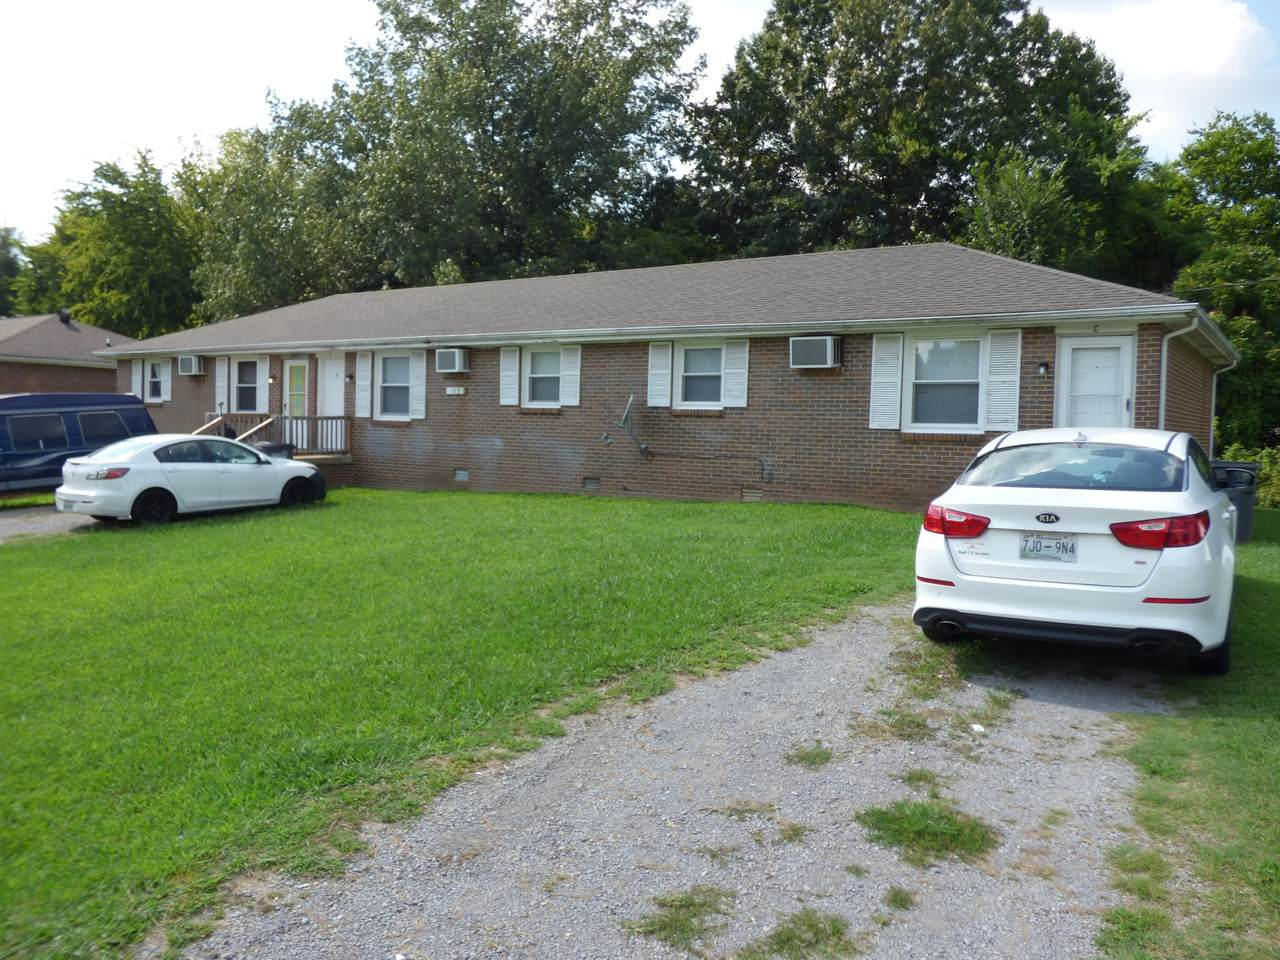 105 Tandy Dr - Photo 1